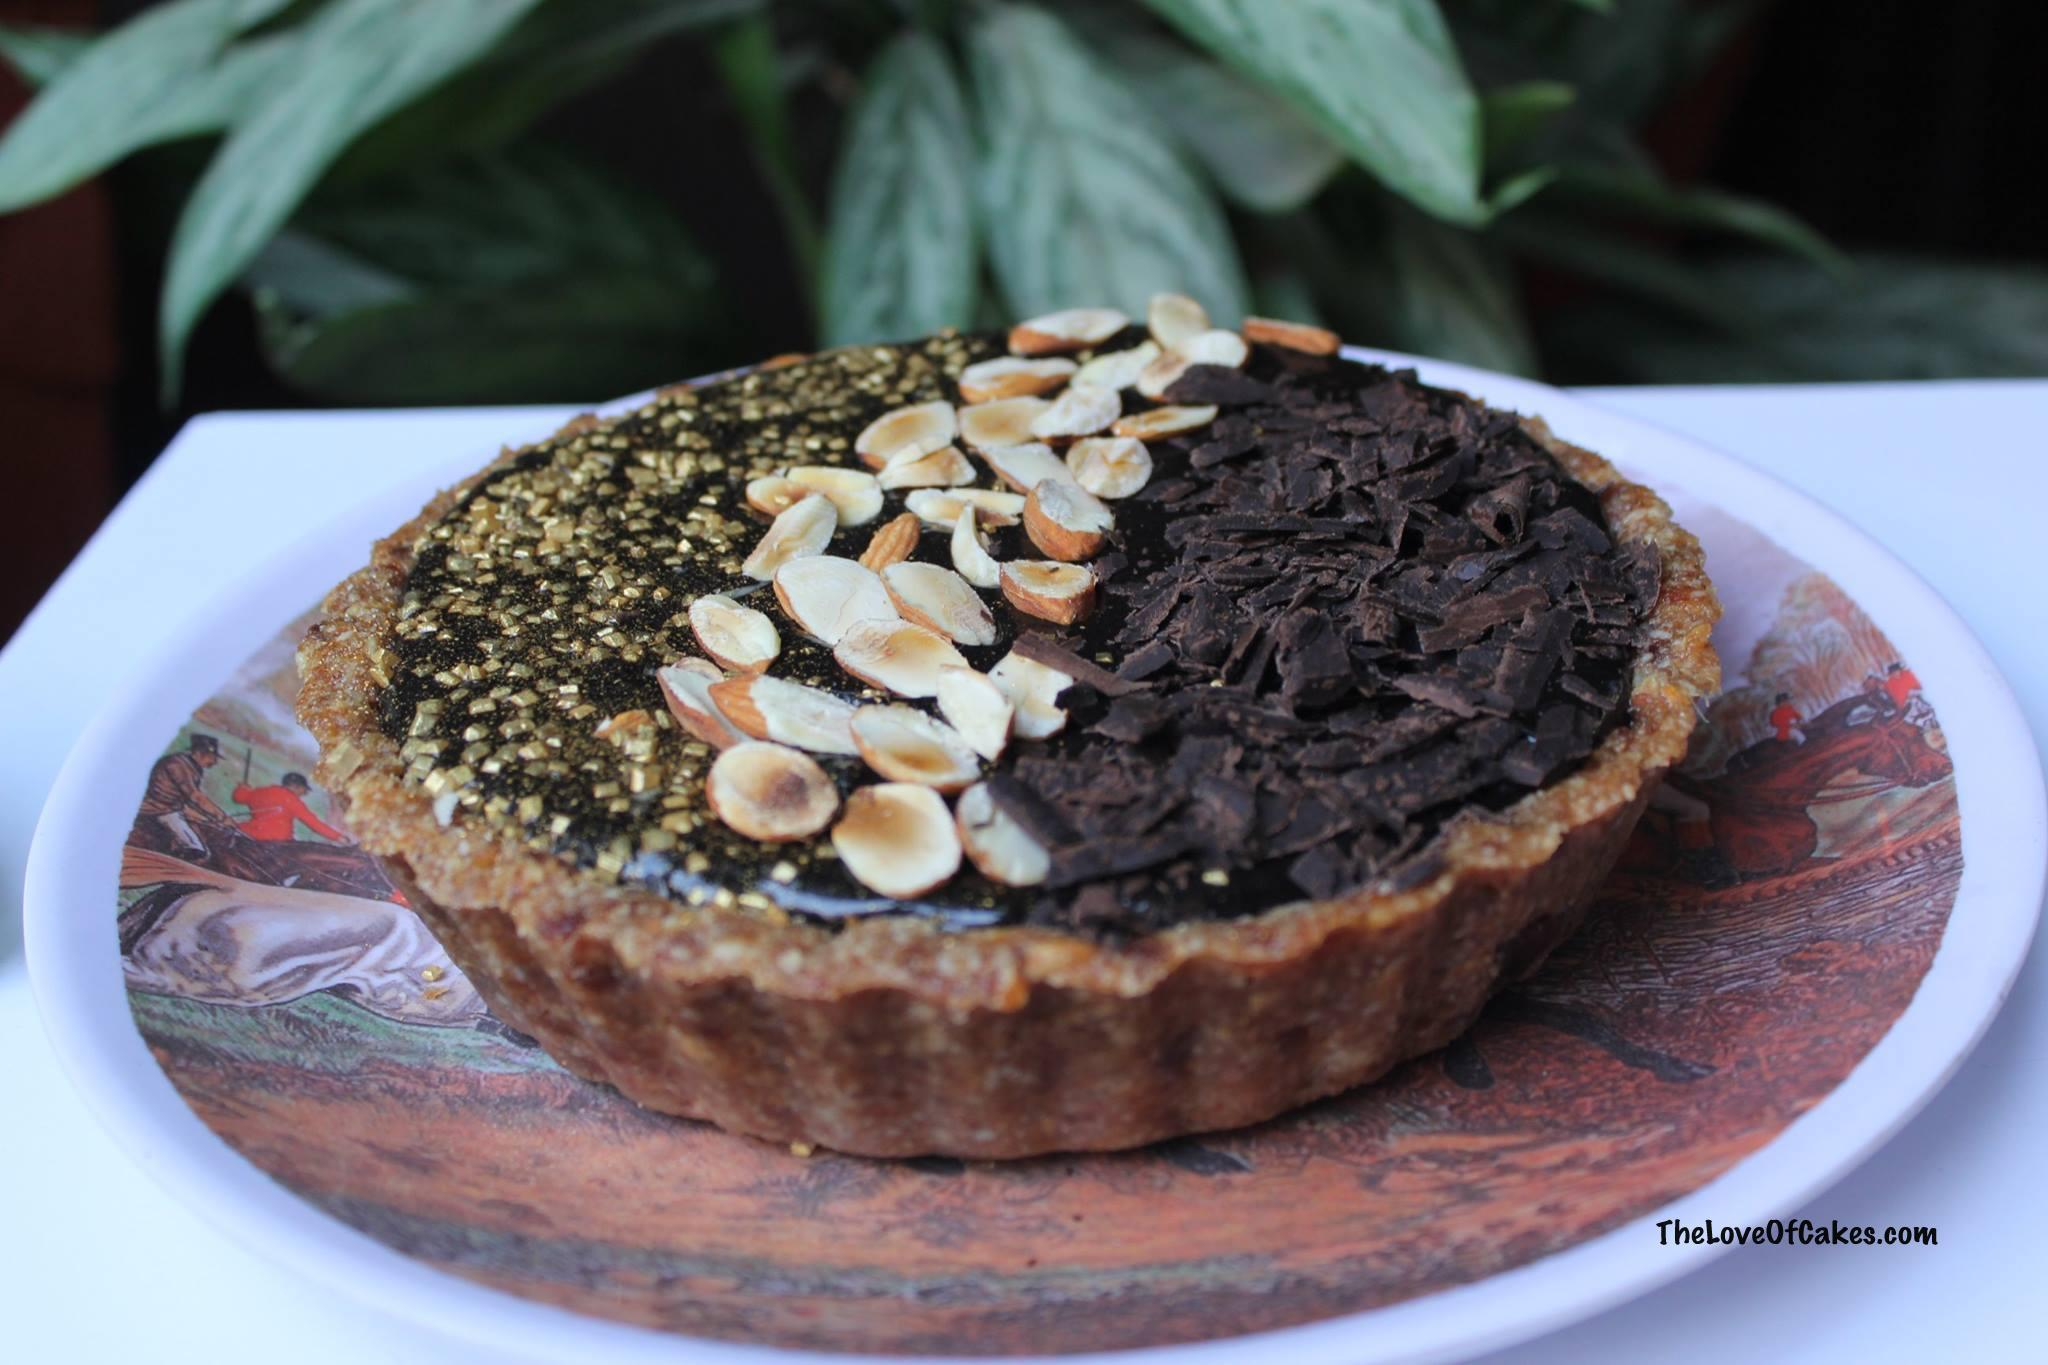 Guilt-free Chocolate Tart